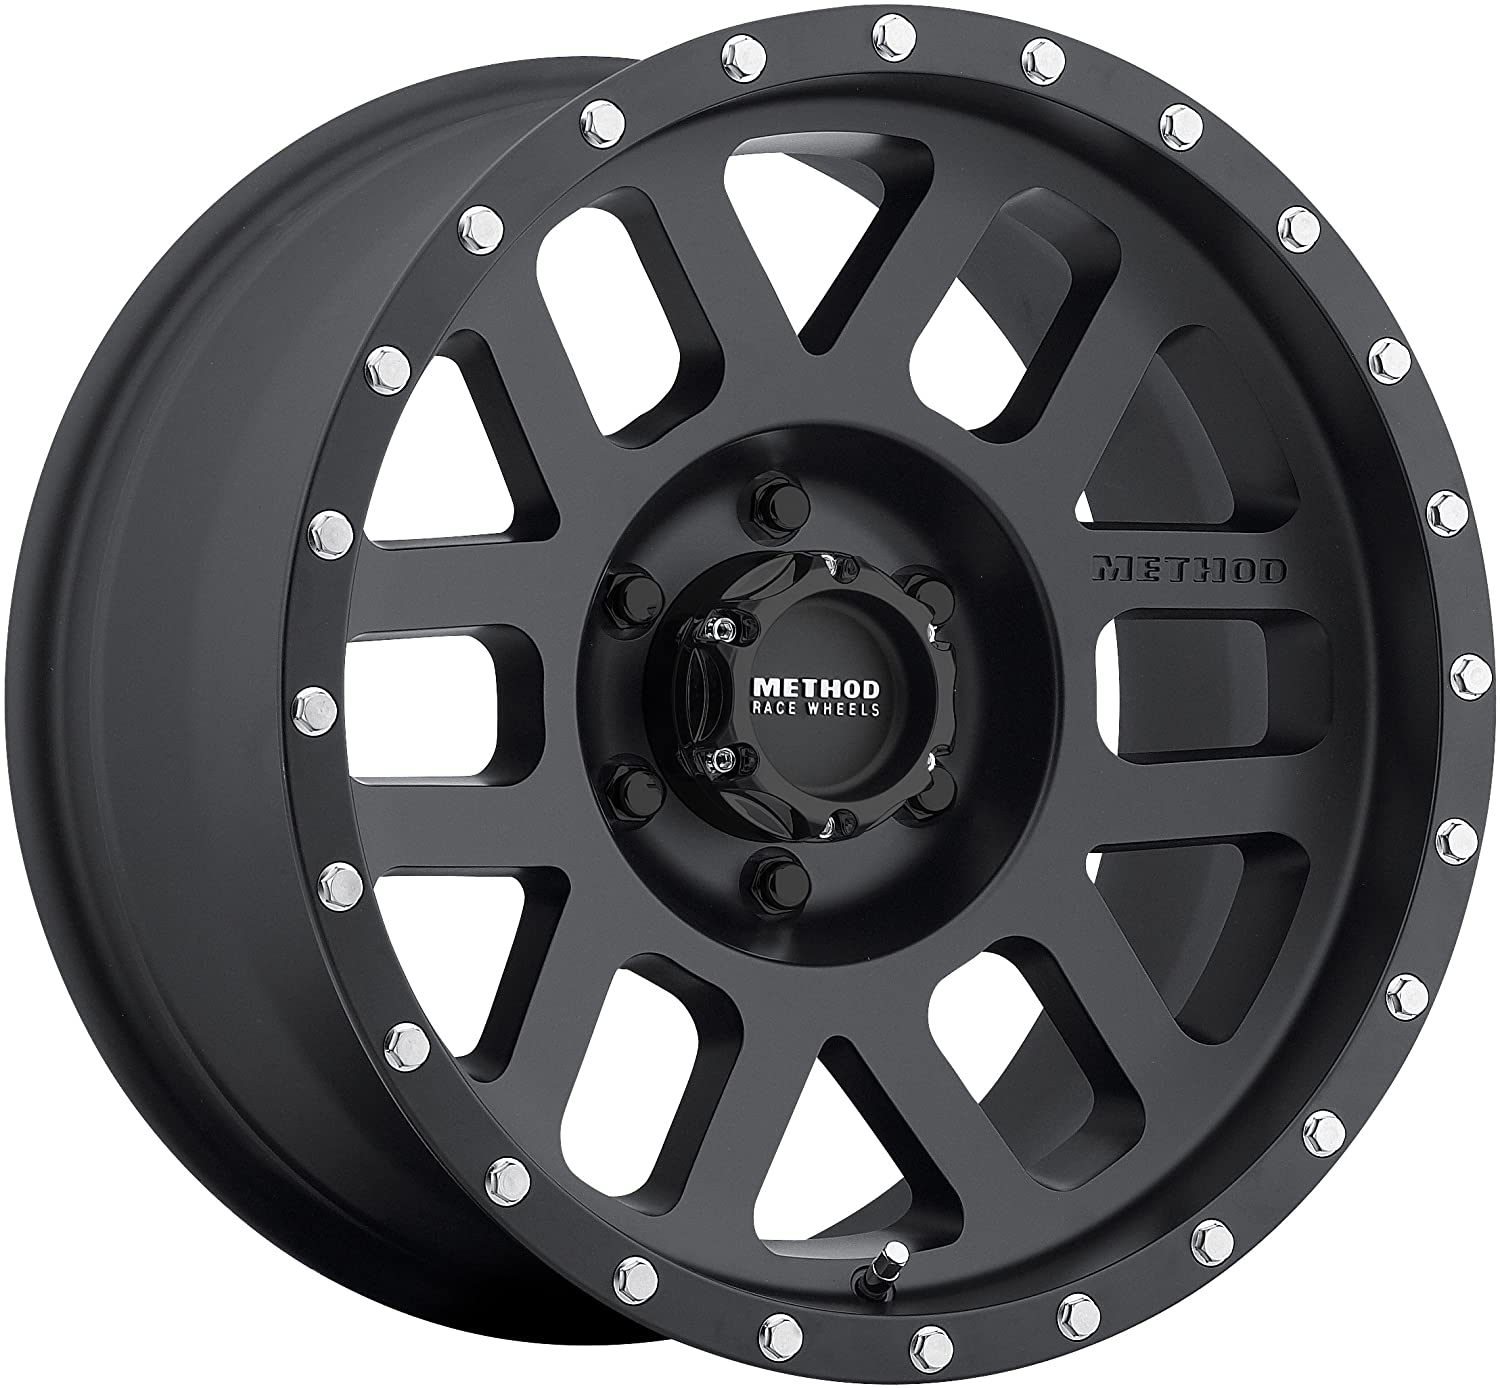 Method Race Wheels 306 Mesh Matte Black 17x8.5 6x5.5, 0mm Offset 4.75